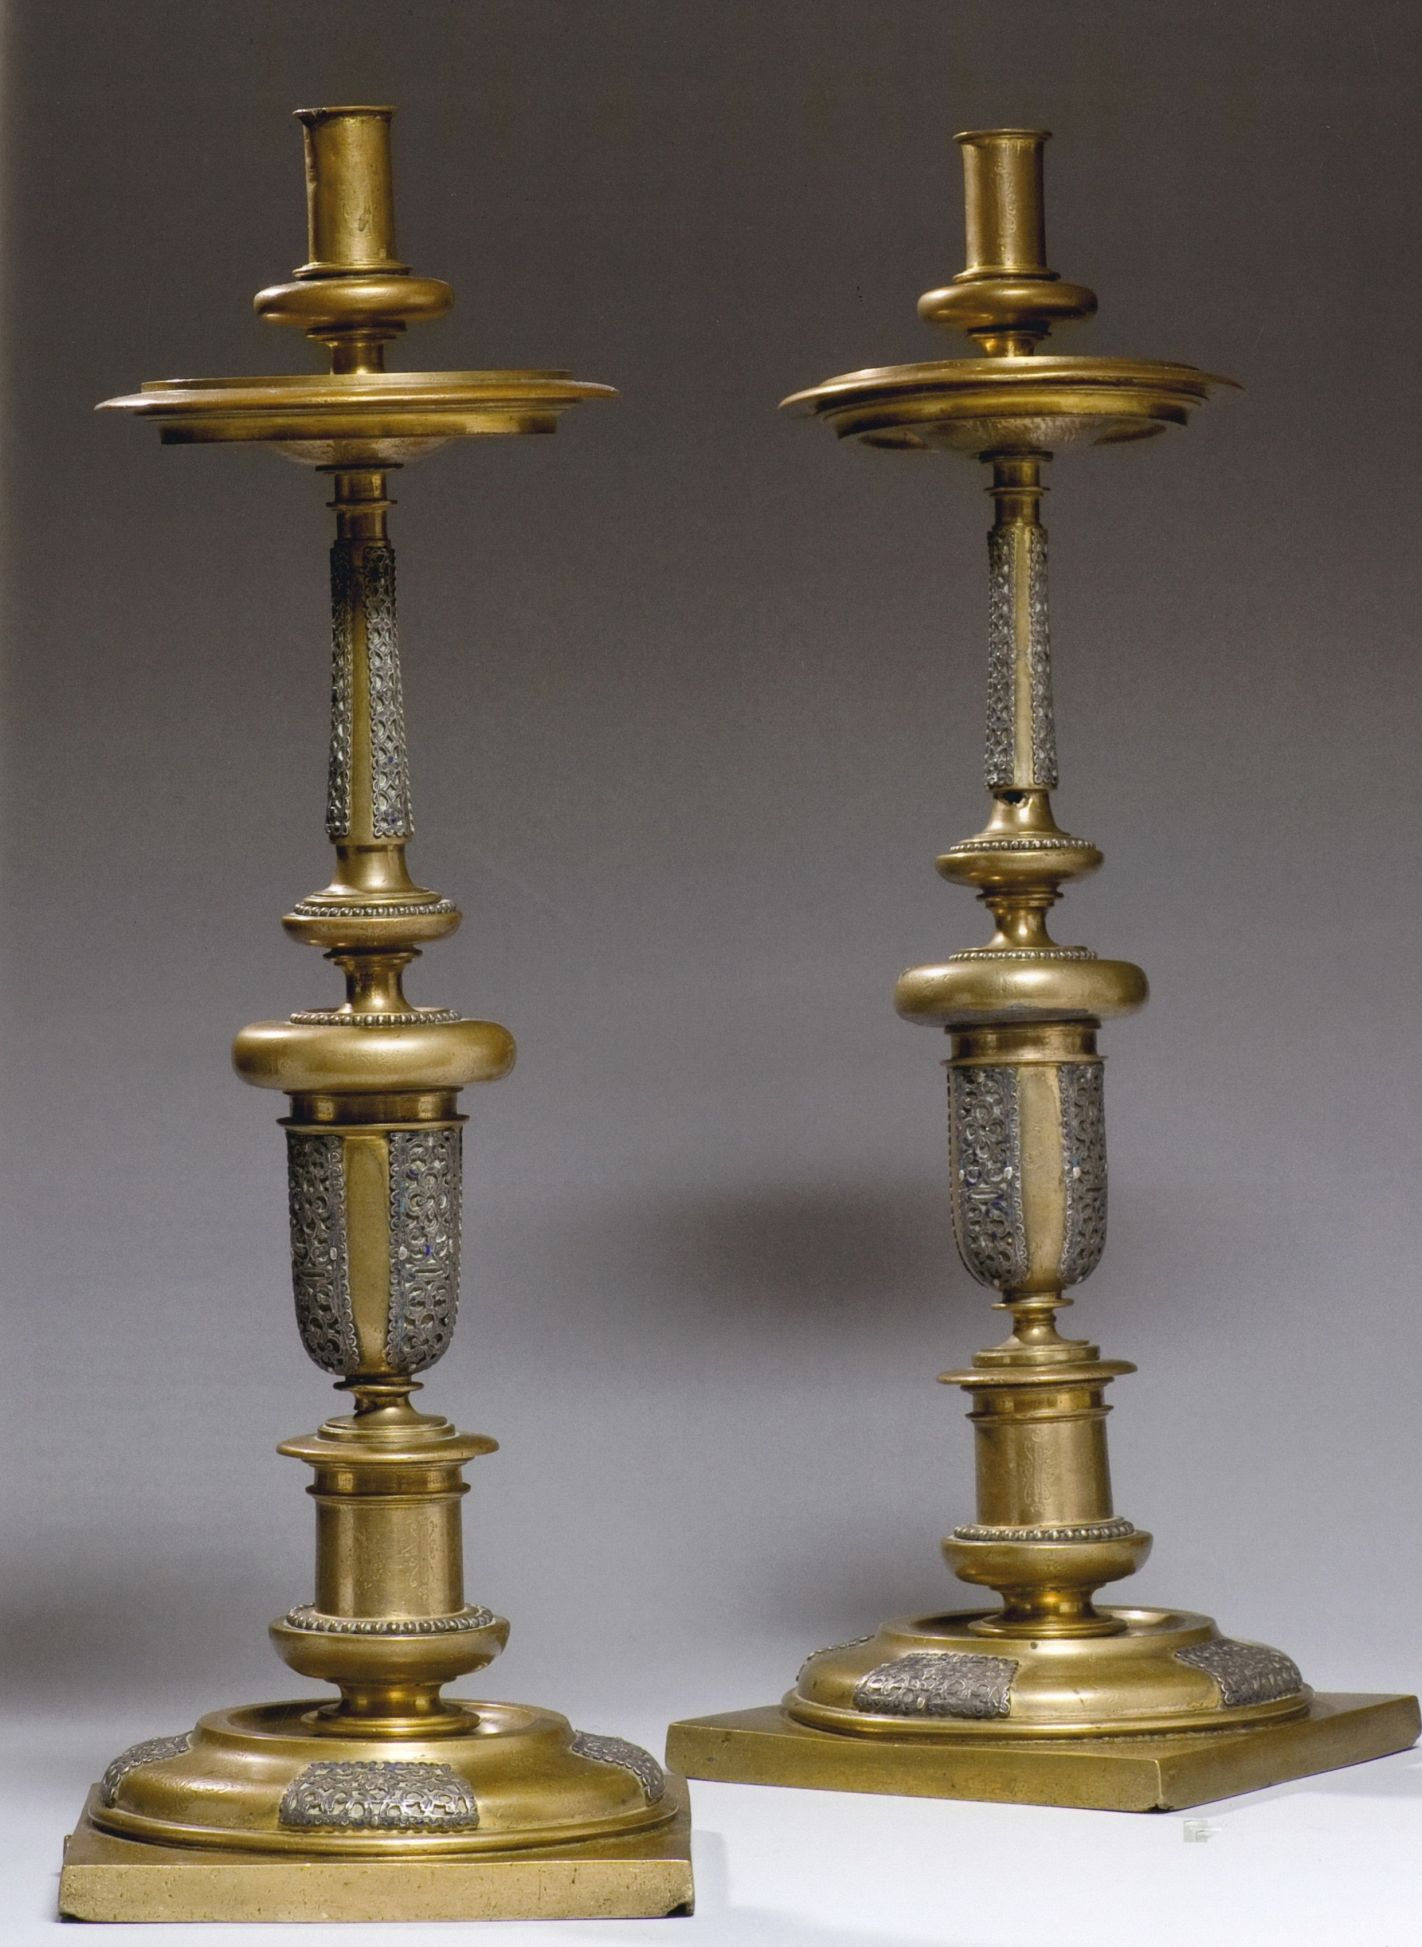 Pair of candlesticks, Spain